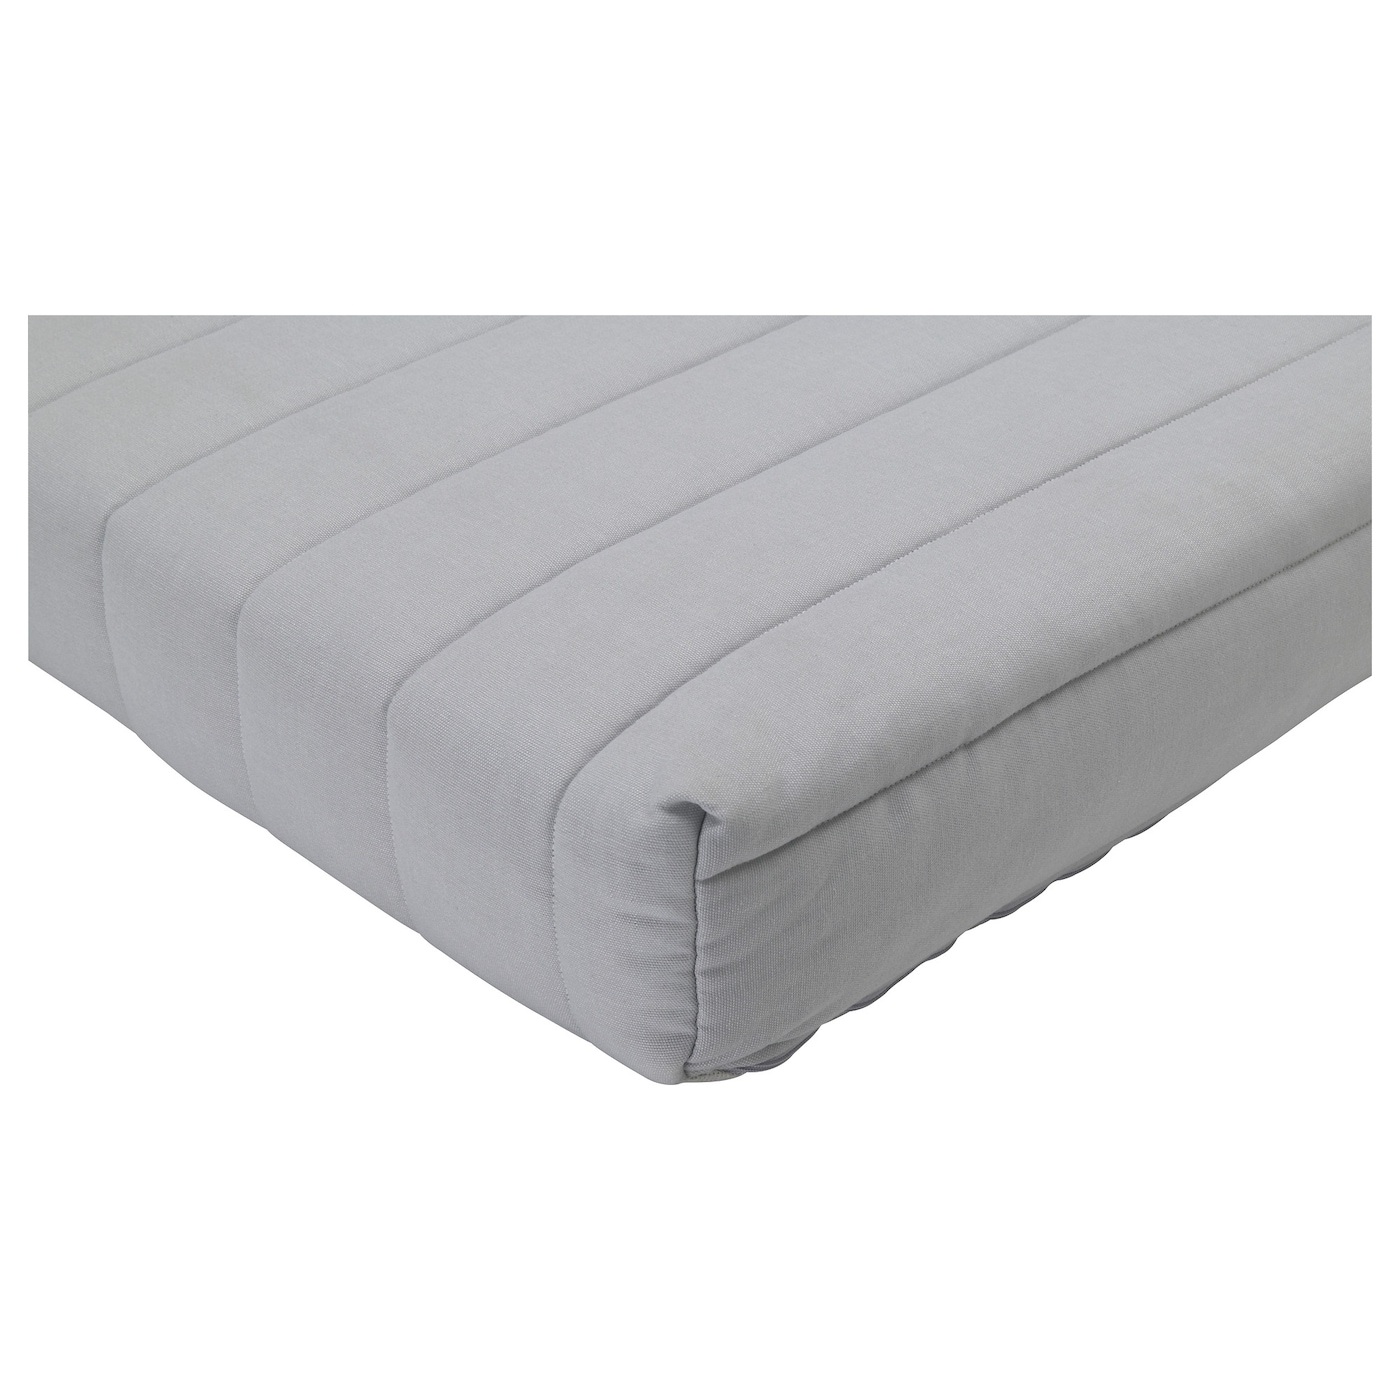 dimensions mattress home size dorel futon twin shop furniture